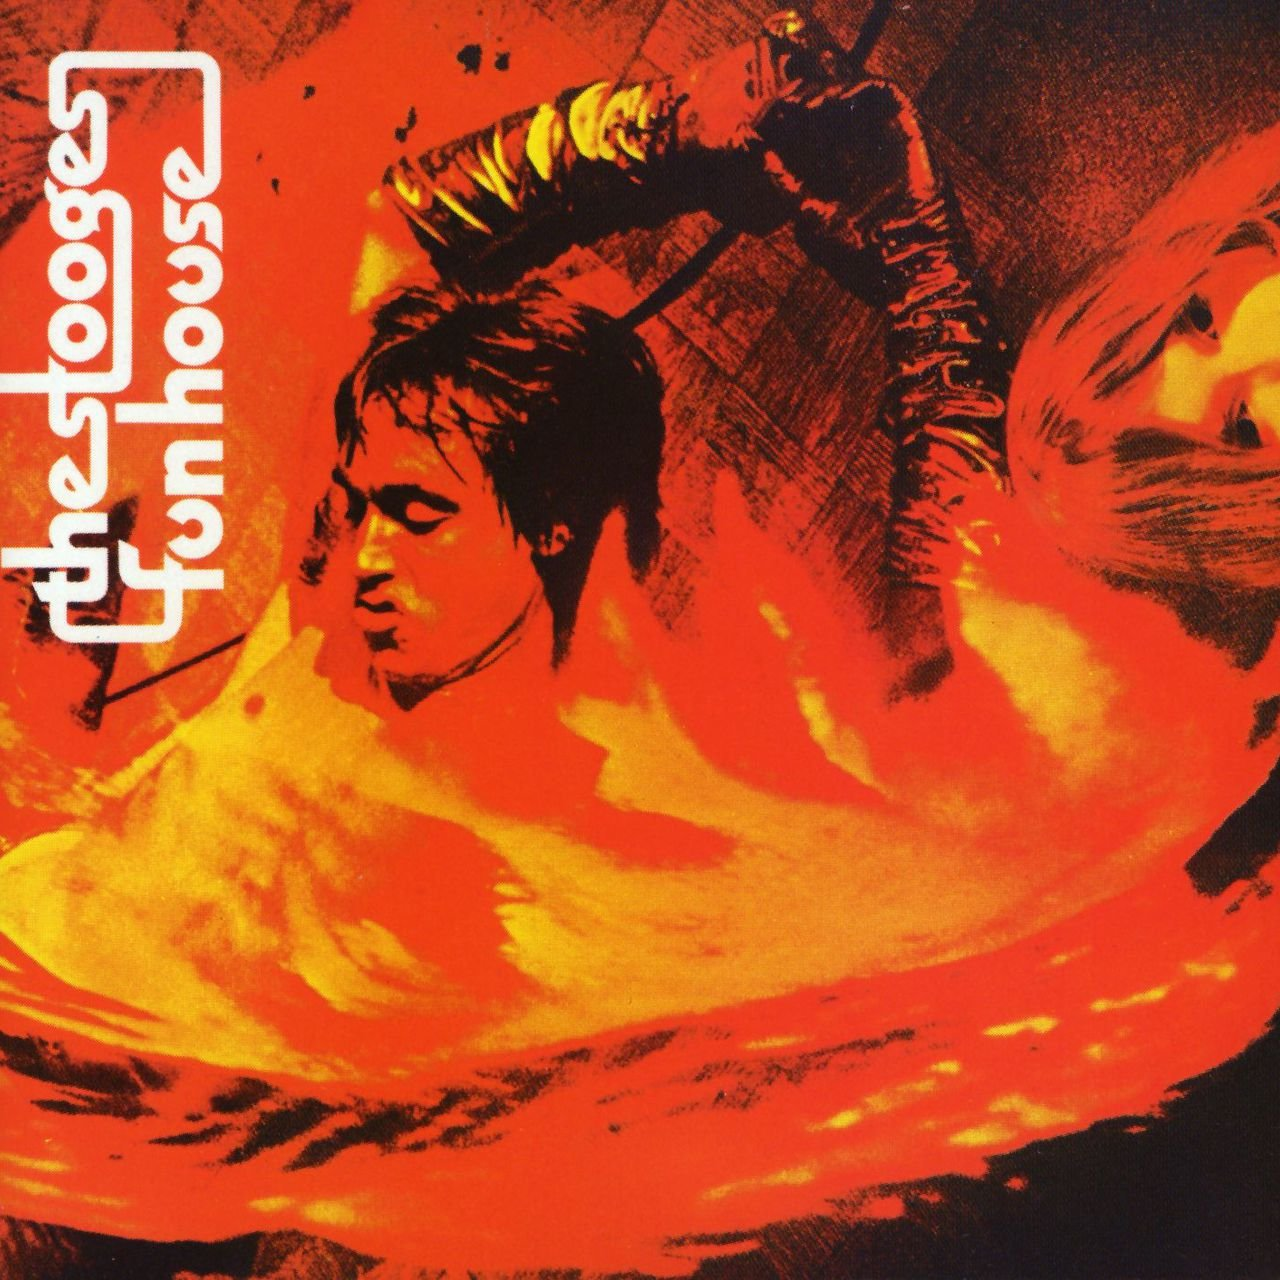 Iggy Pop Album Covers Best funhouse / the stooges tidal